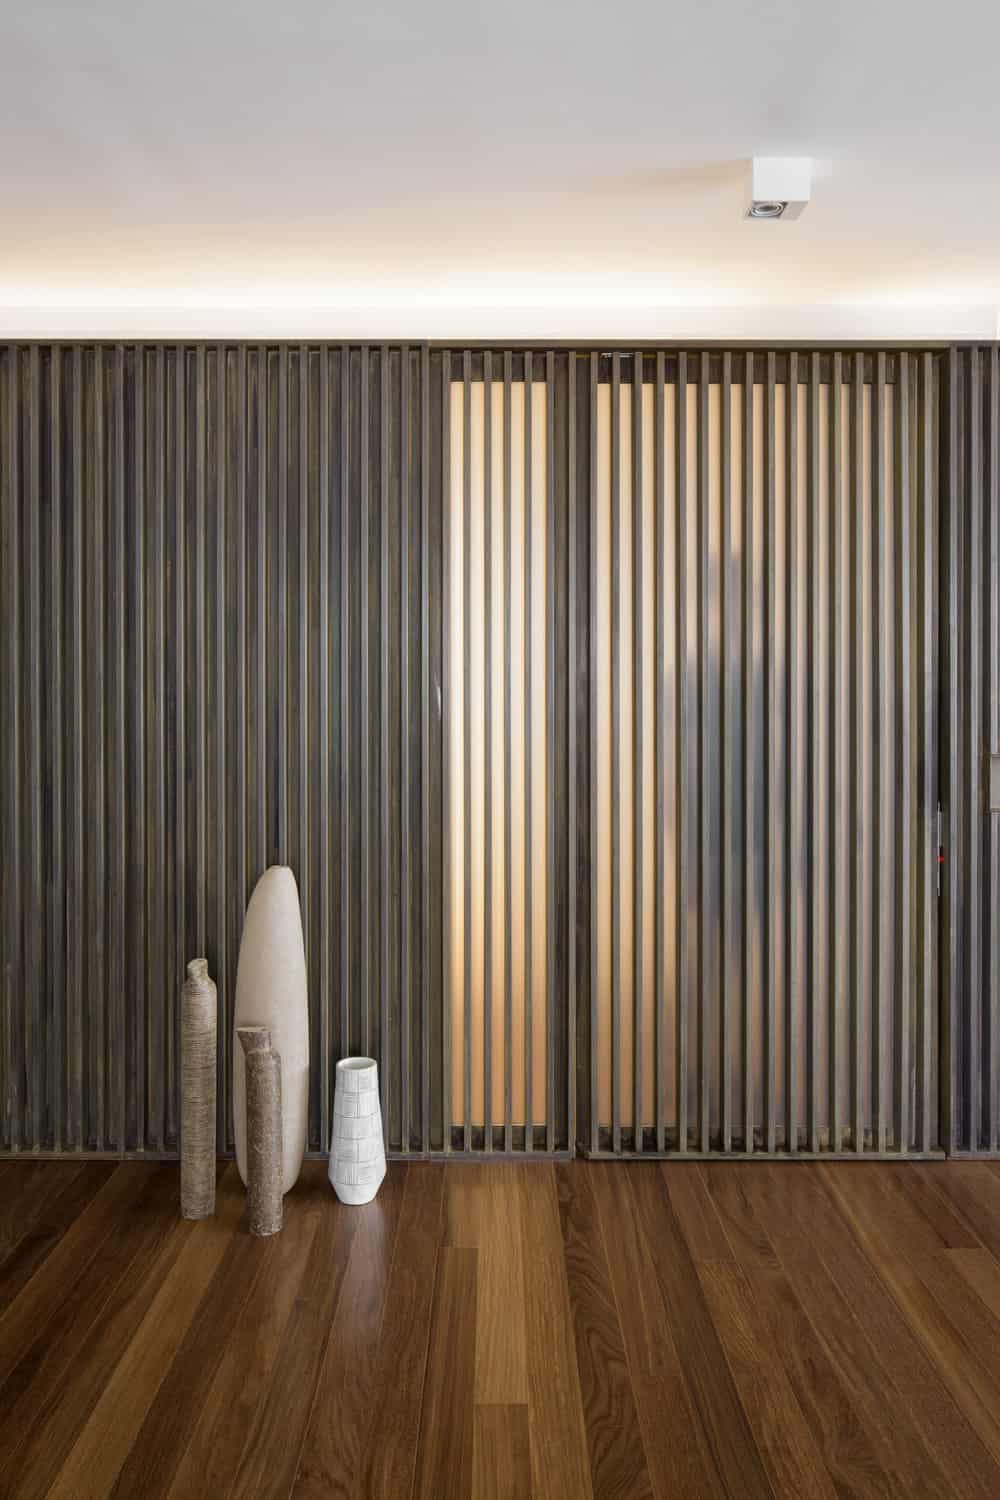 This is what the slatted wall looks like when the lights of the room behind it is turned on.